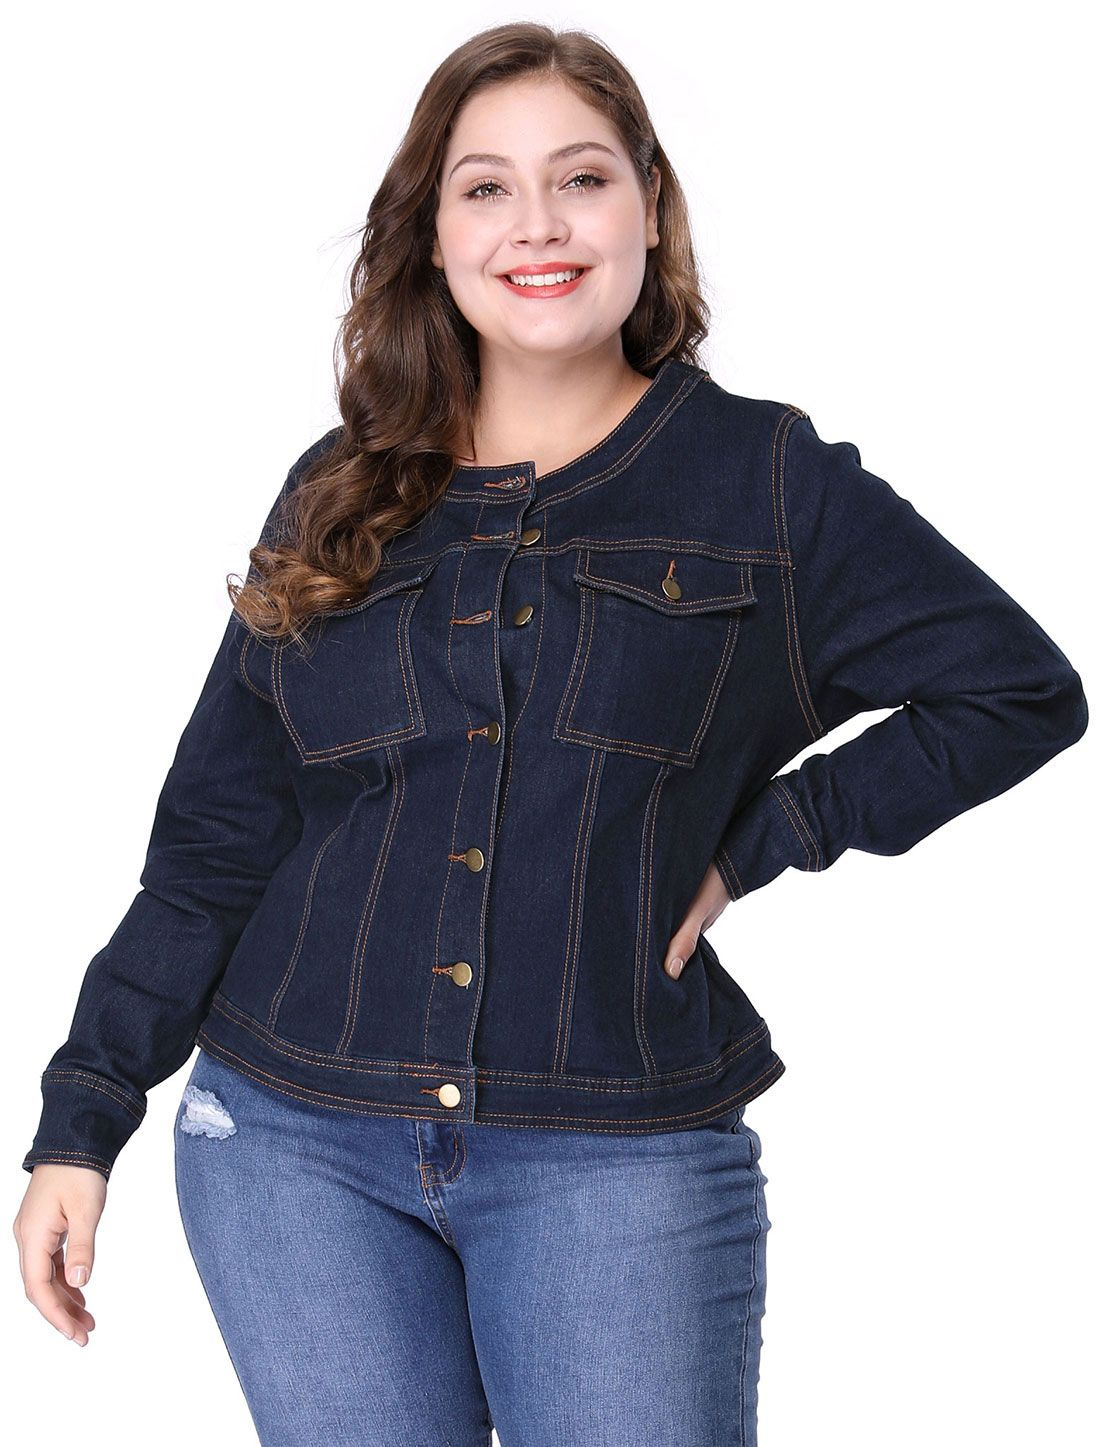 f91e97a9a87 Women's Plus Size Long Sleeves Collarless Denim Jacket - Outerwear